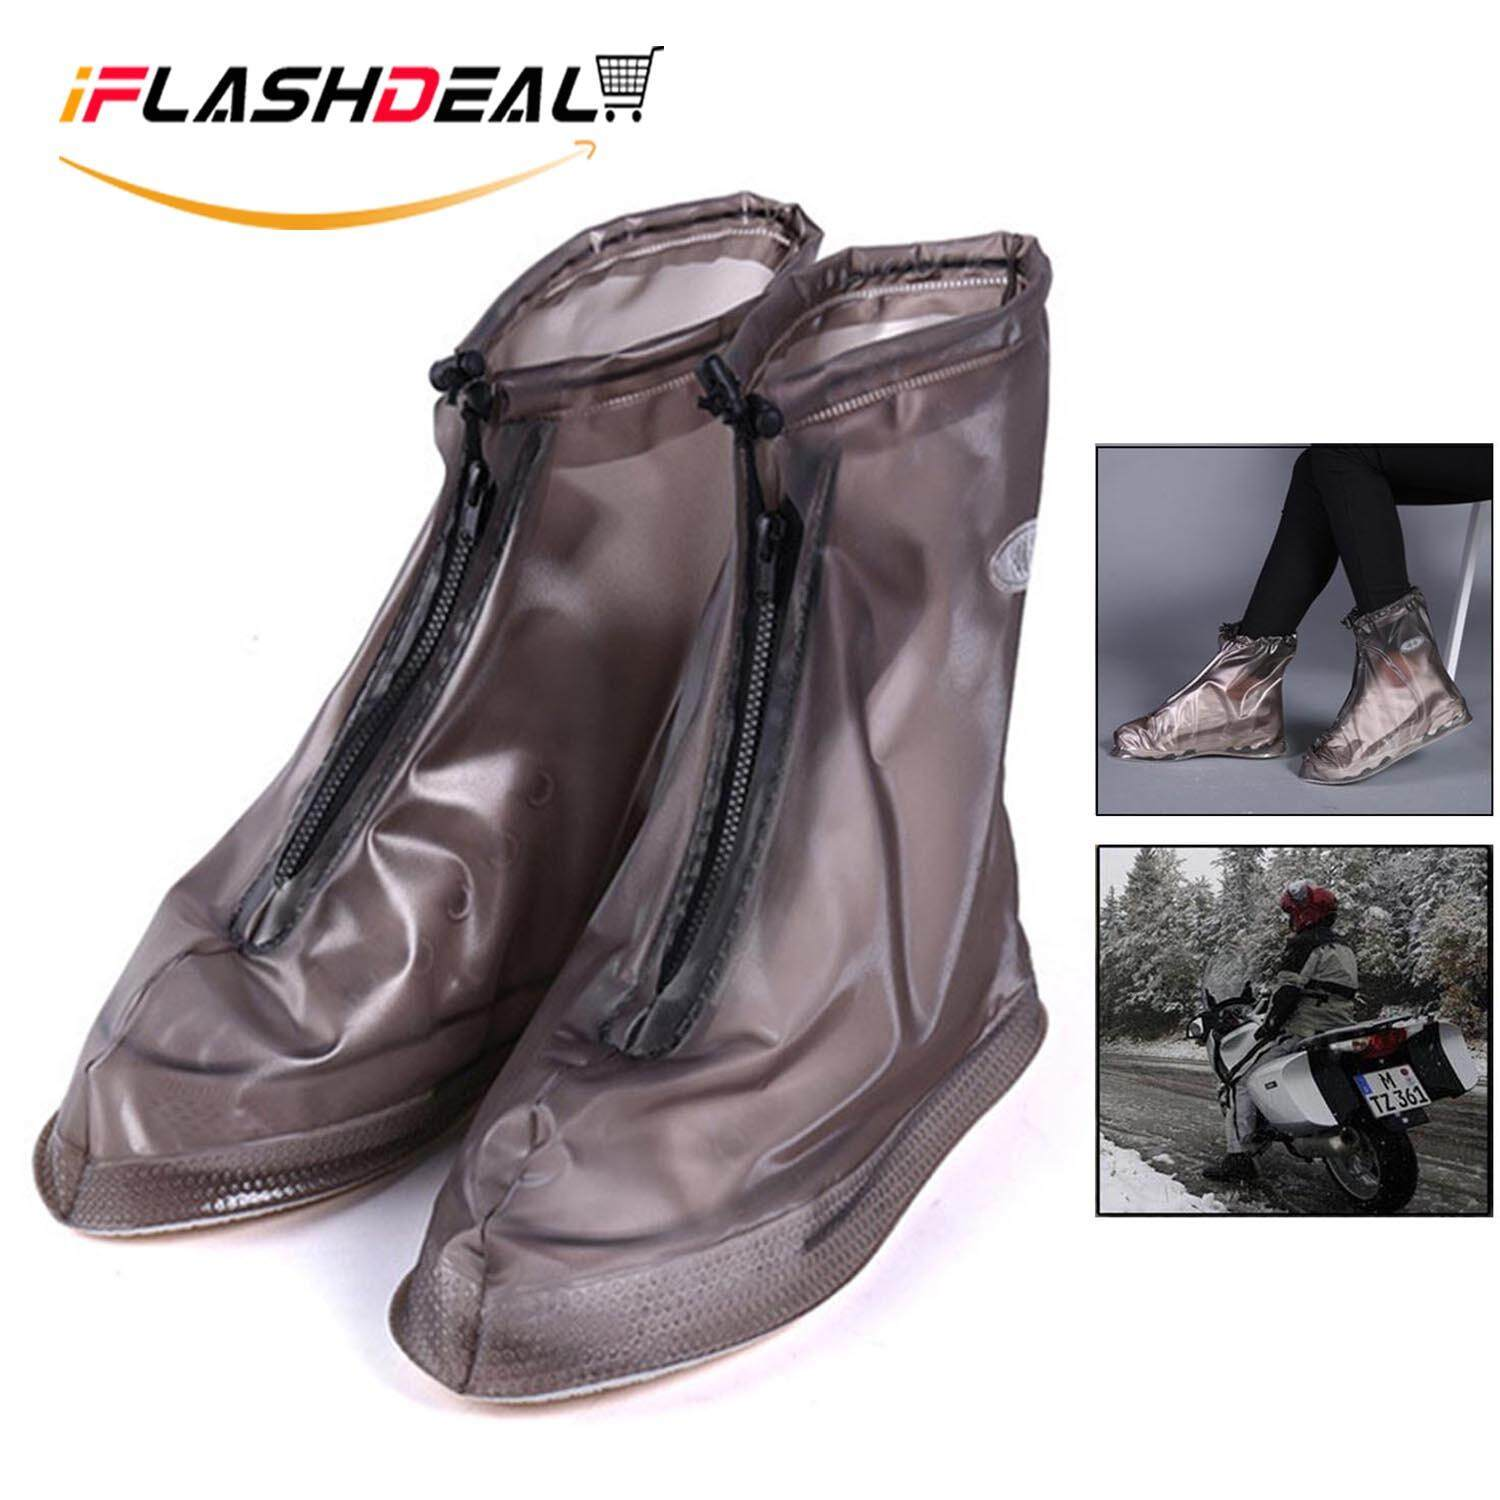 Men Boots Shoes Online With Best Price In Malaysia Cut Engineer Safety Iron Suede Leather Soft Brown Iflashdeal Rain Covers Waterproof Cover Protector Women